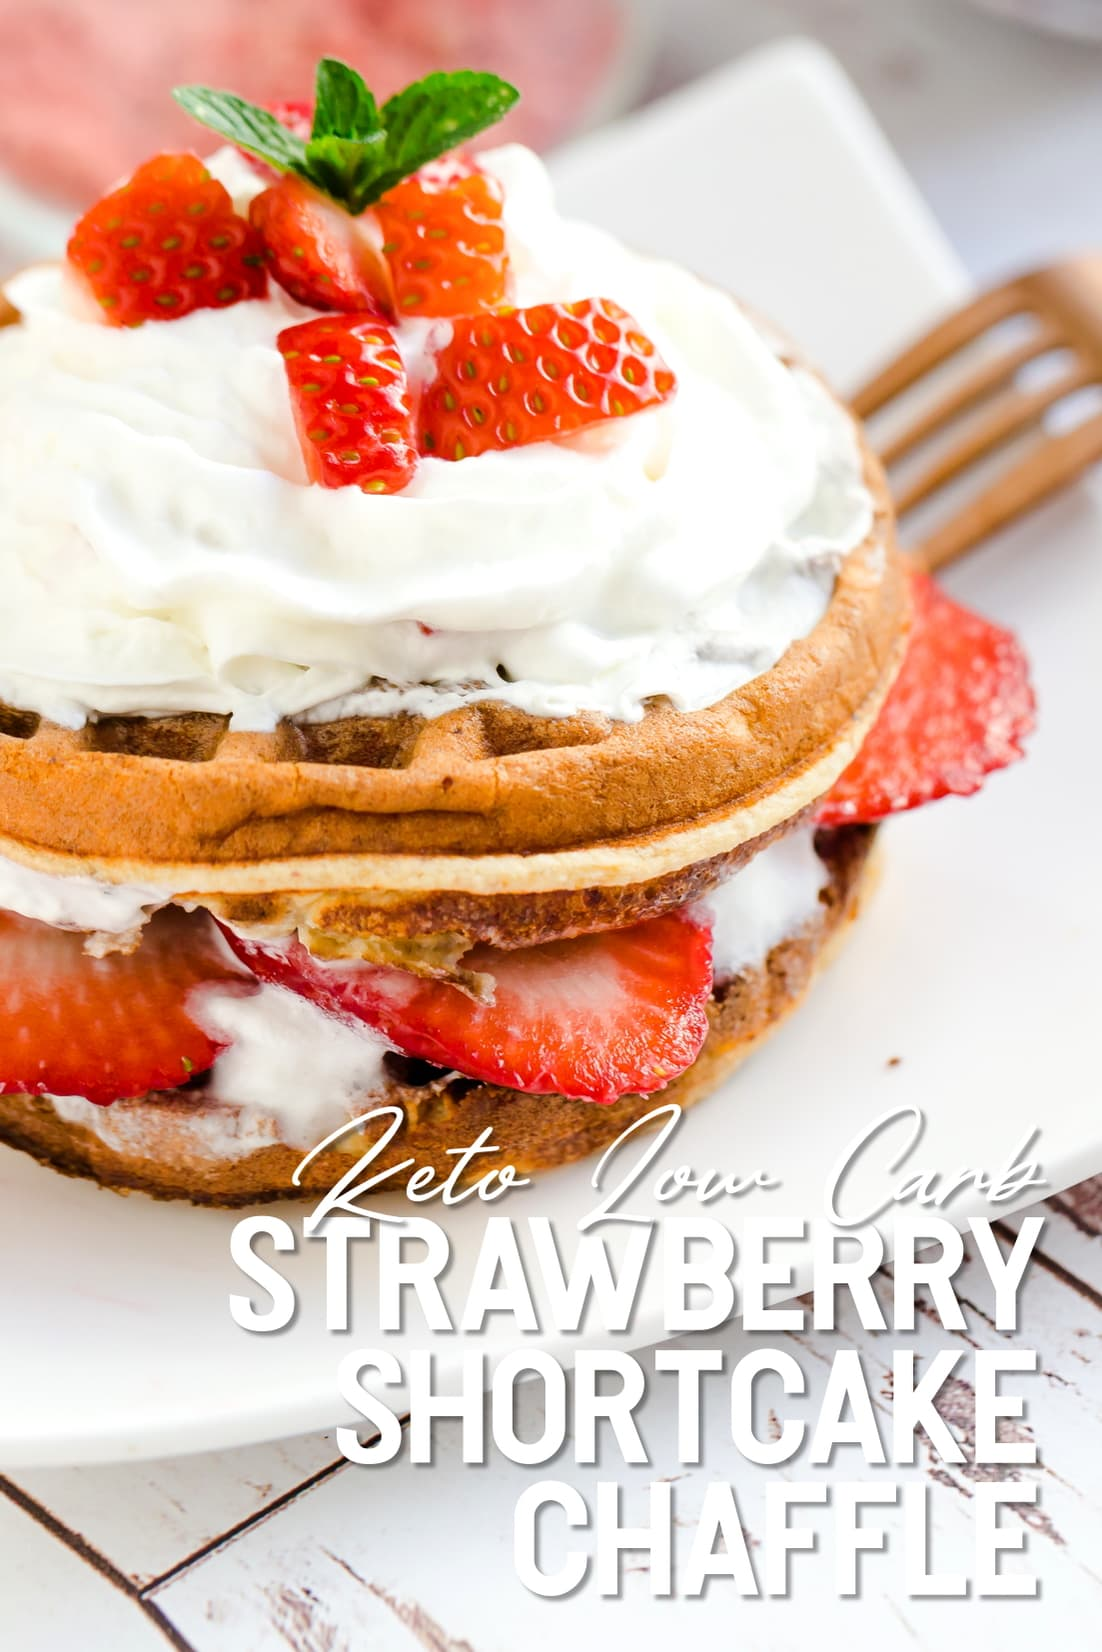 Keto Strawberry Shortcake Chaffle served with whip cream and sliced strawberries